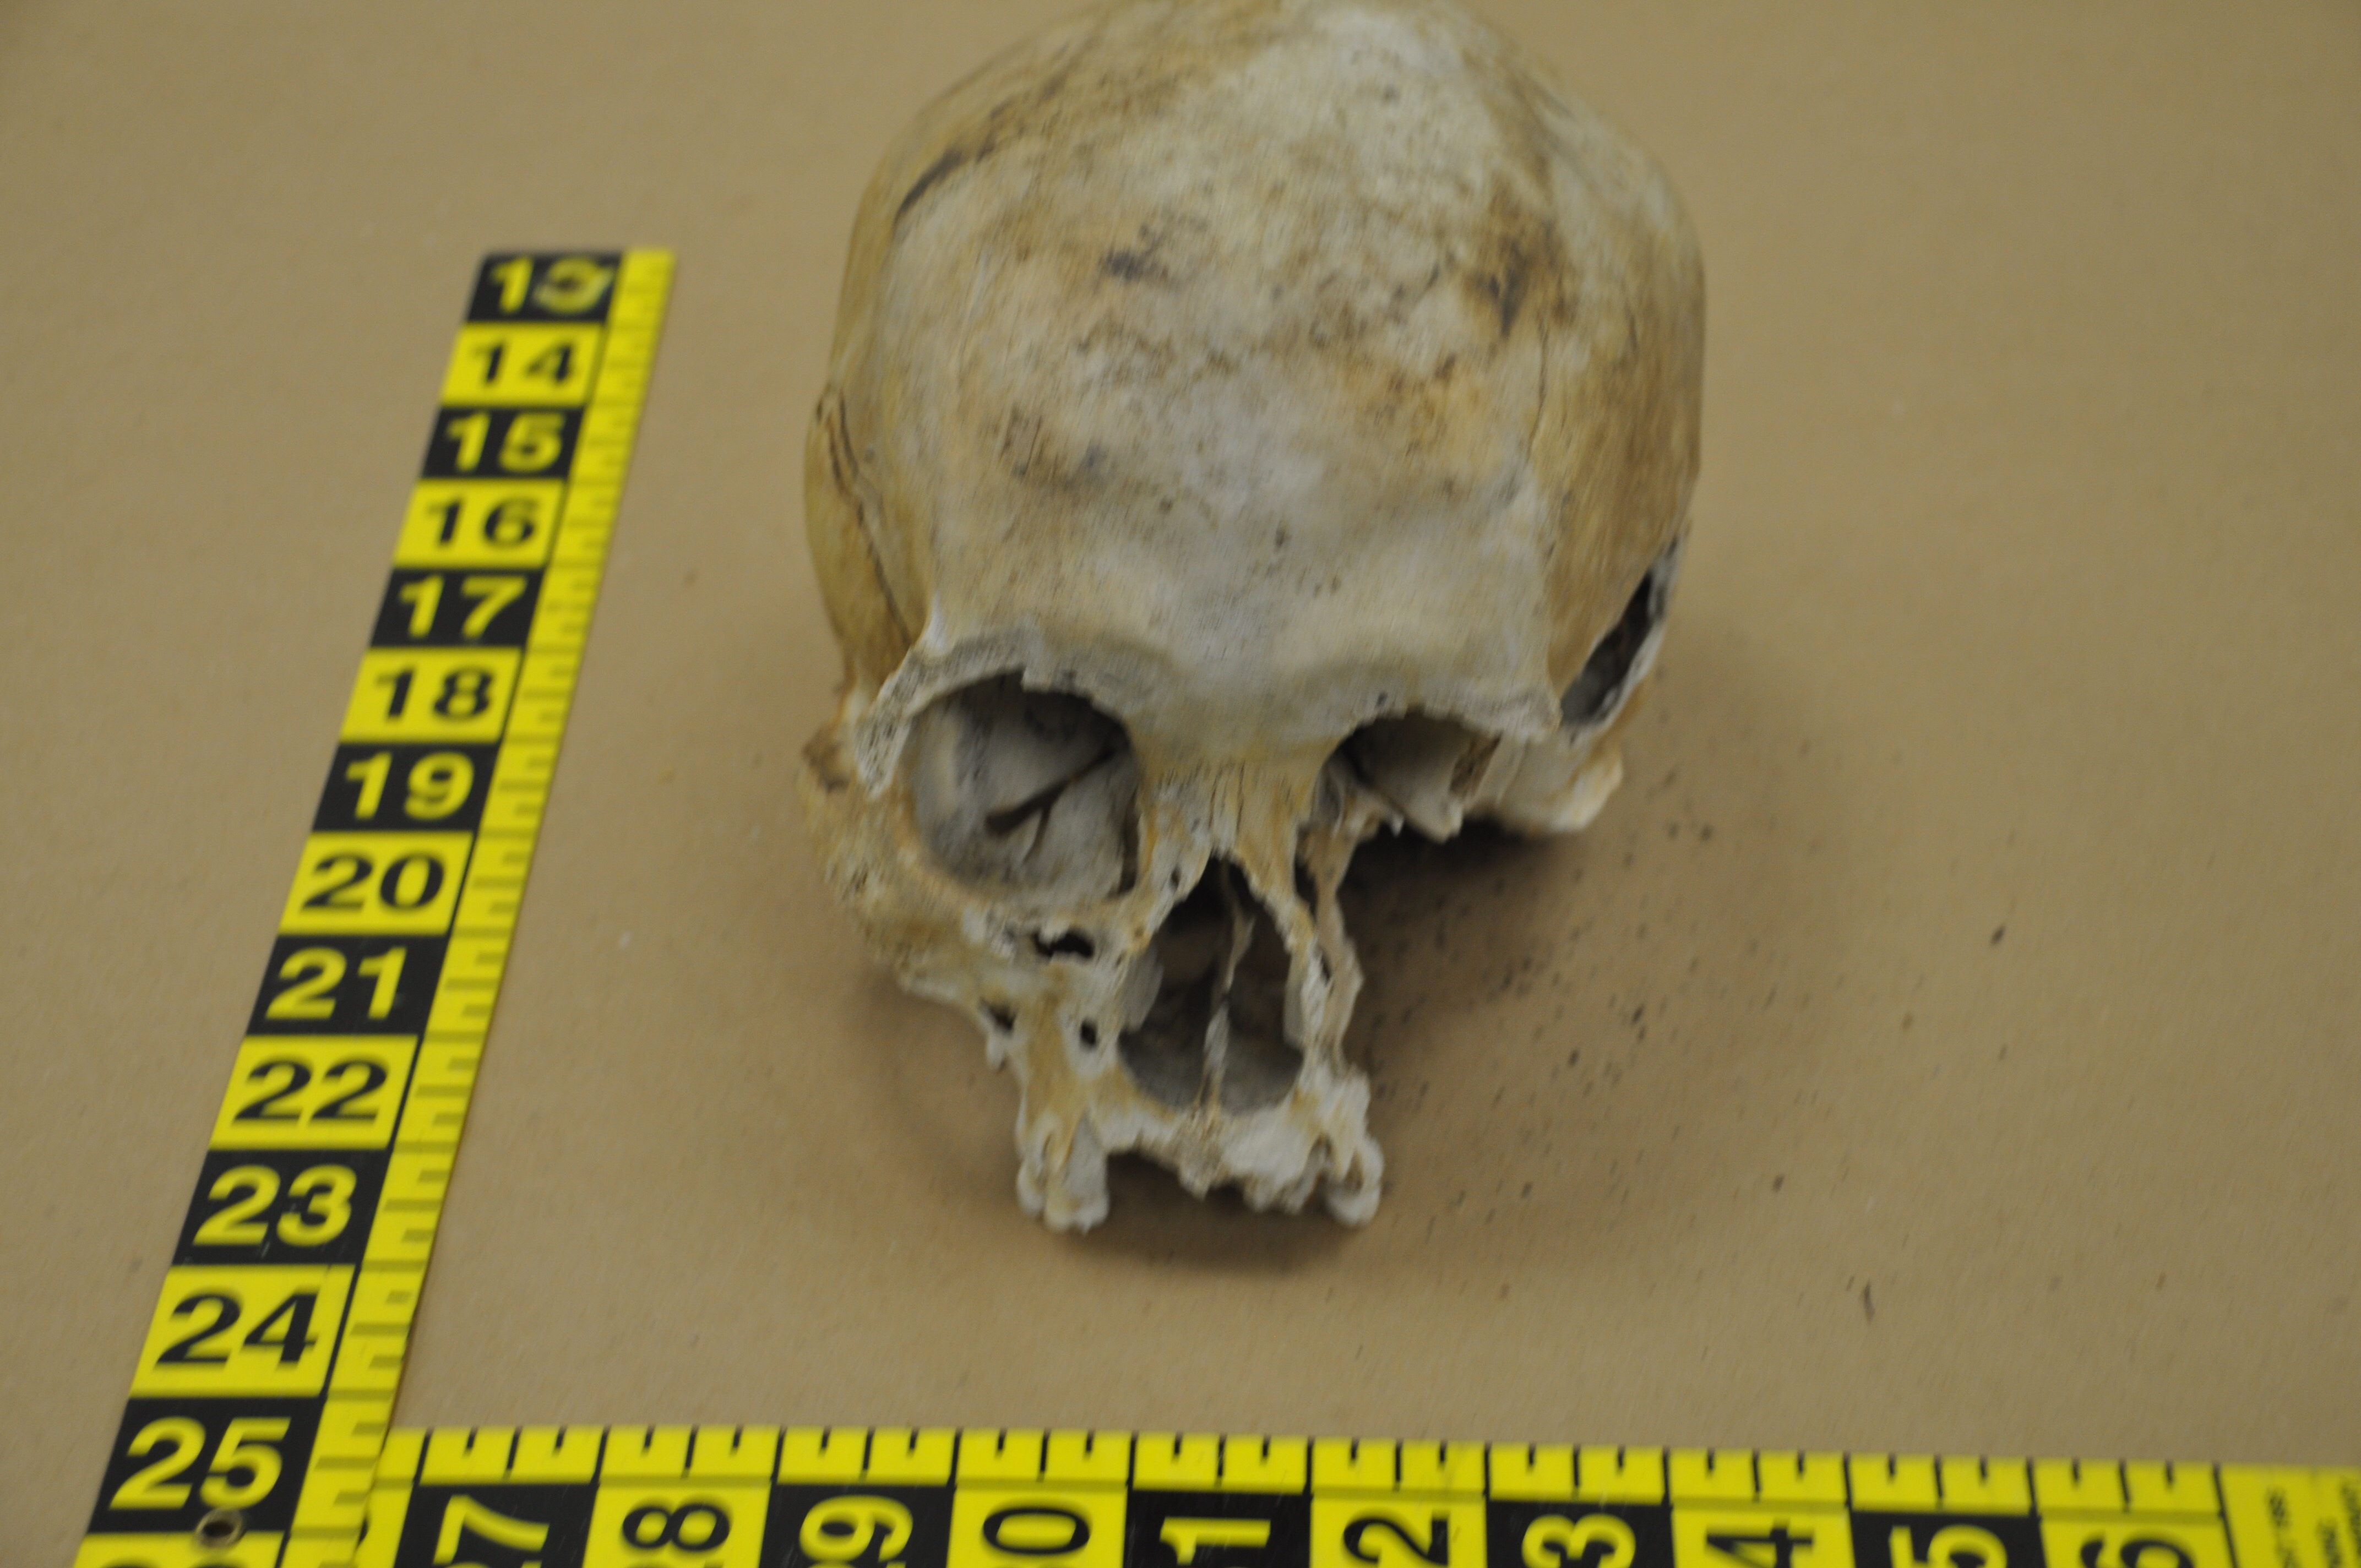 A human skull found in Brick. (File Photo)